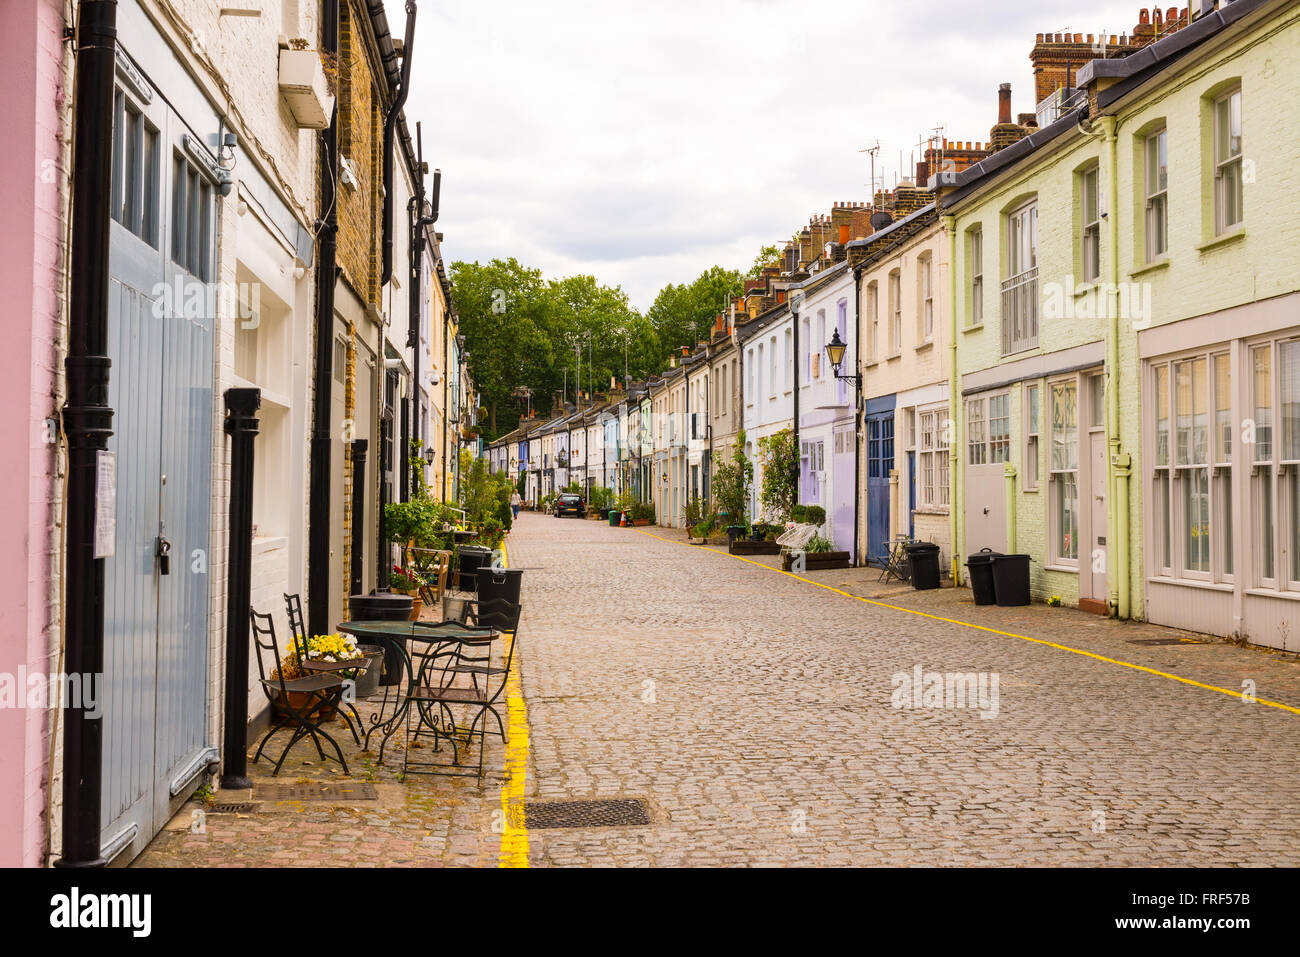 mews terrace stock photos mews terrace stock images alamy. Black Bedroom Furniture Sets. Home Design Ideas